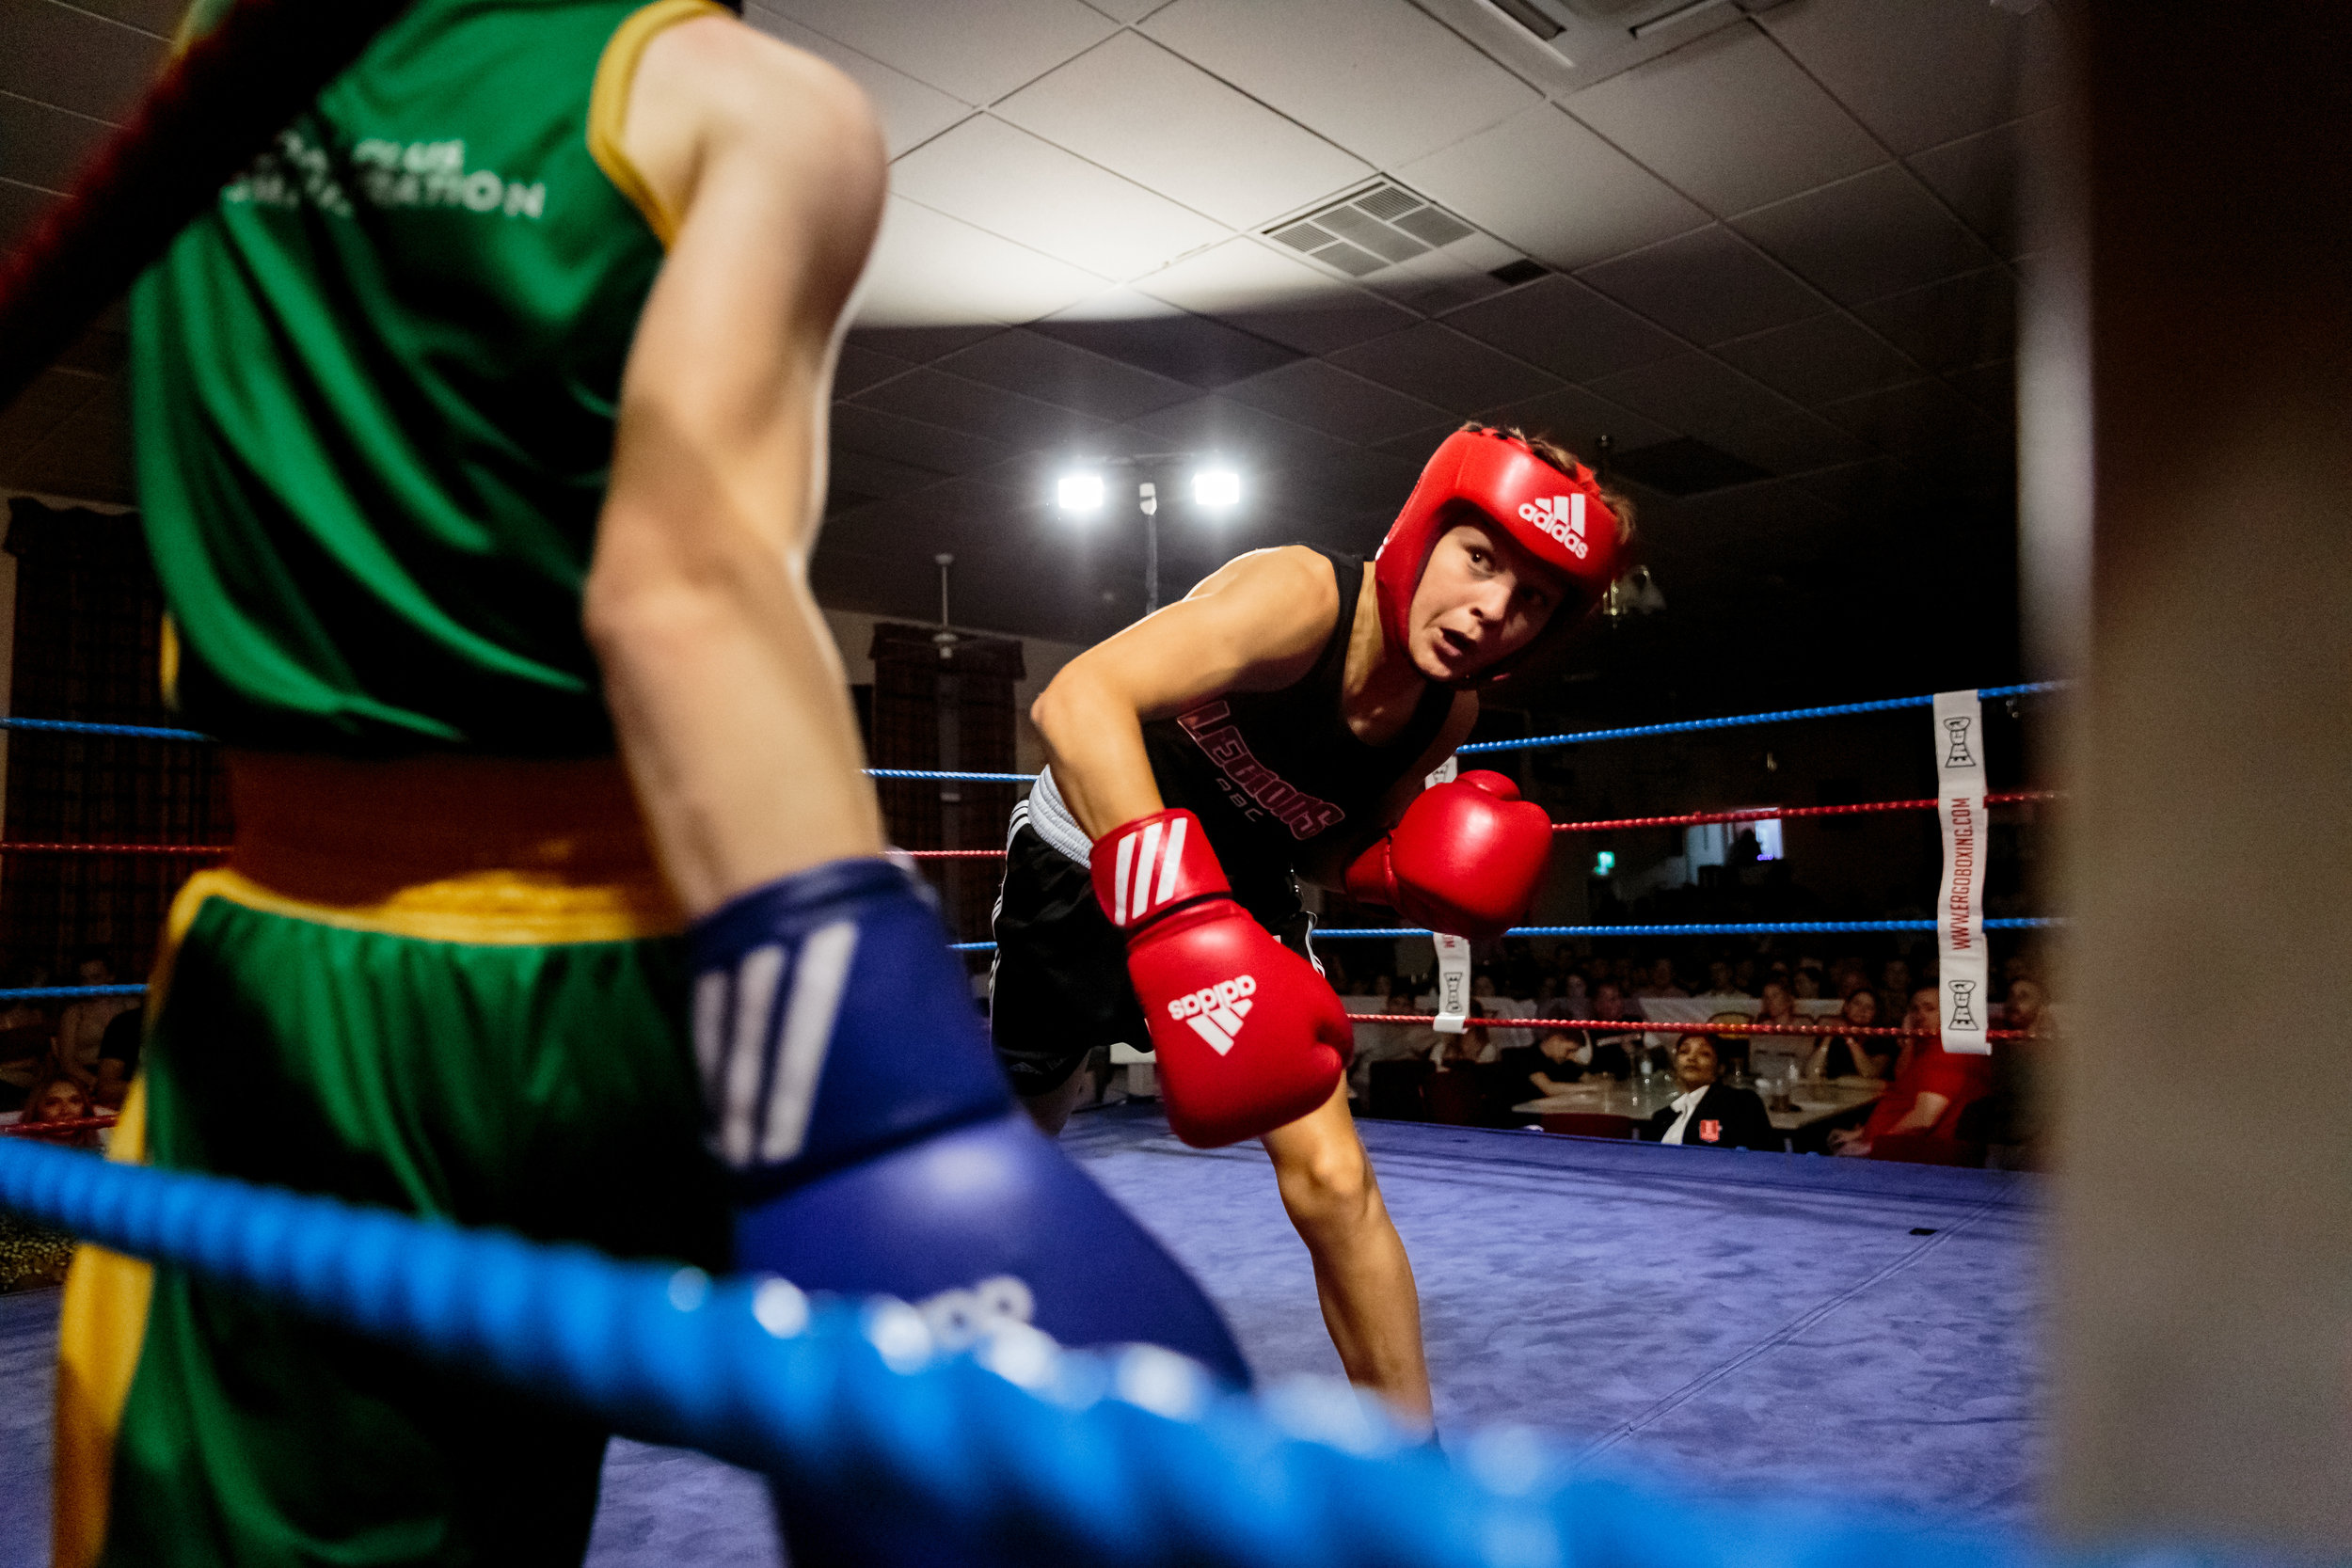 Amateur boxers against the ropes